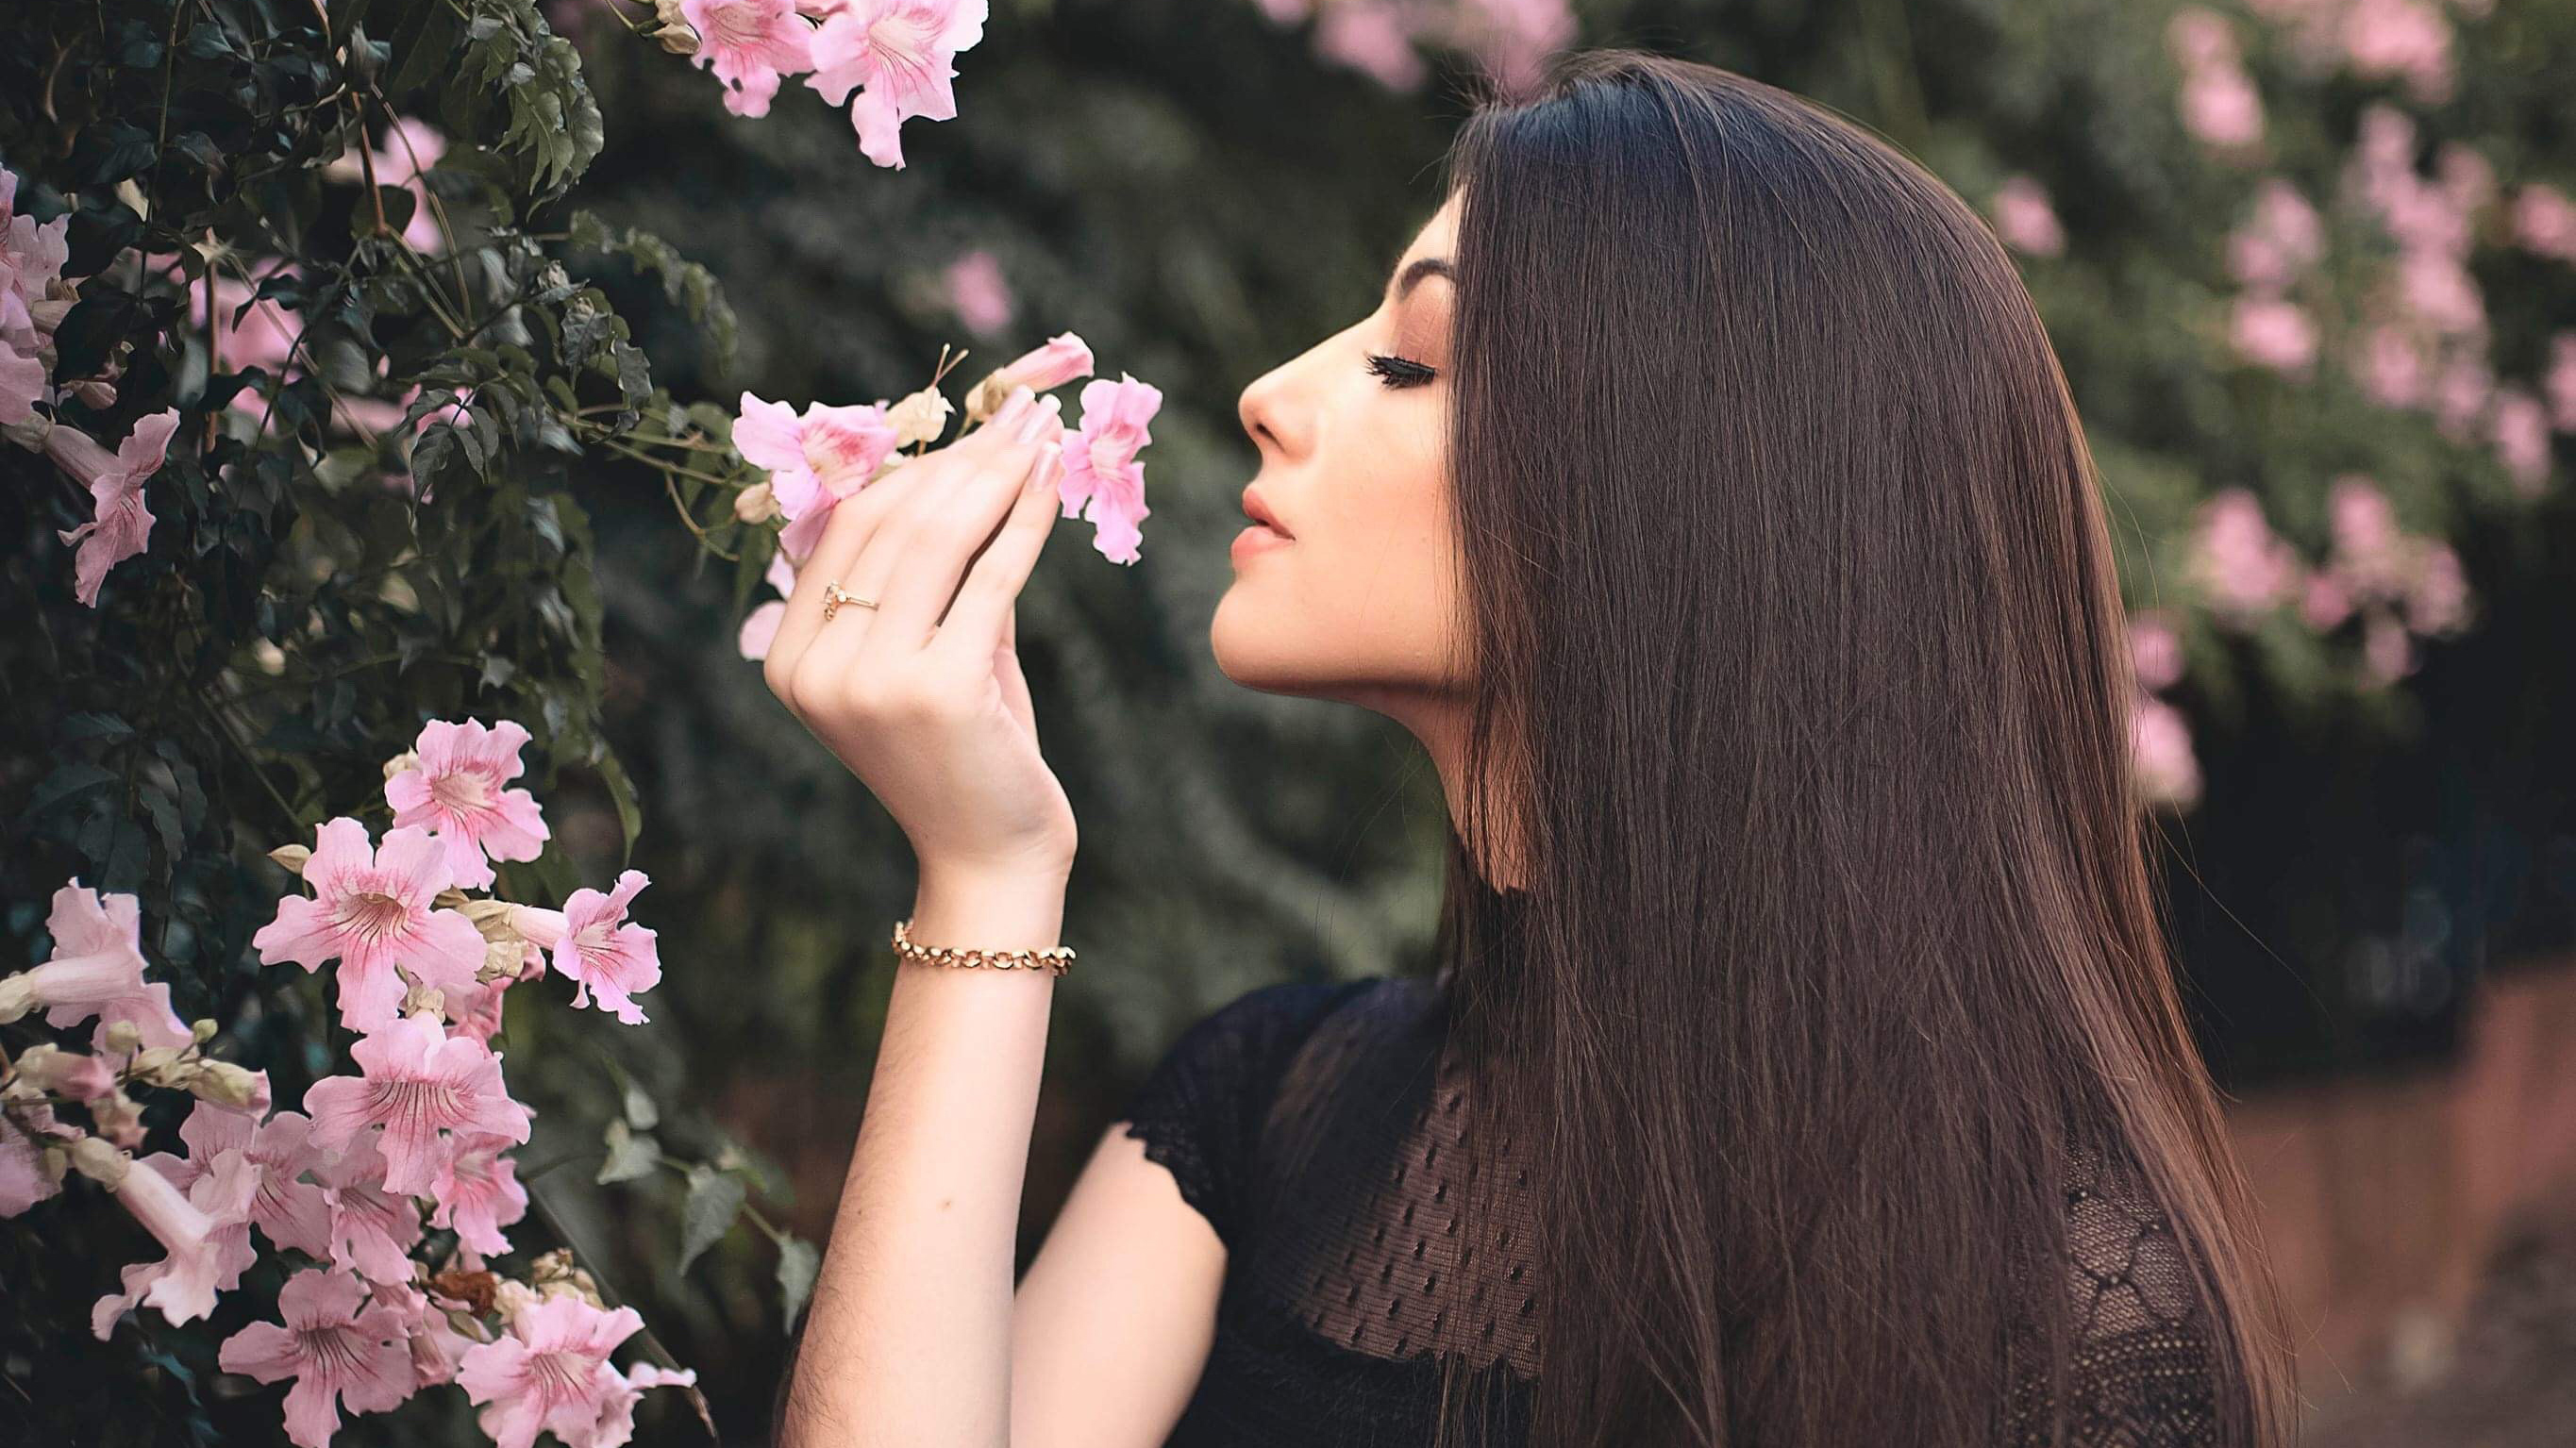 Attractive Beautiful Girl Smelling Flowers Hd Girls 4k Wallpapers Images Backgrounds Photos And Pictures